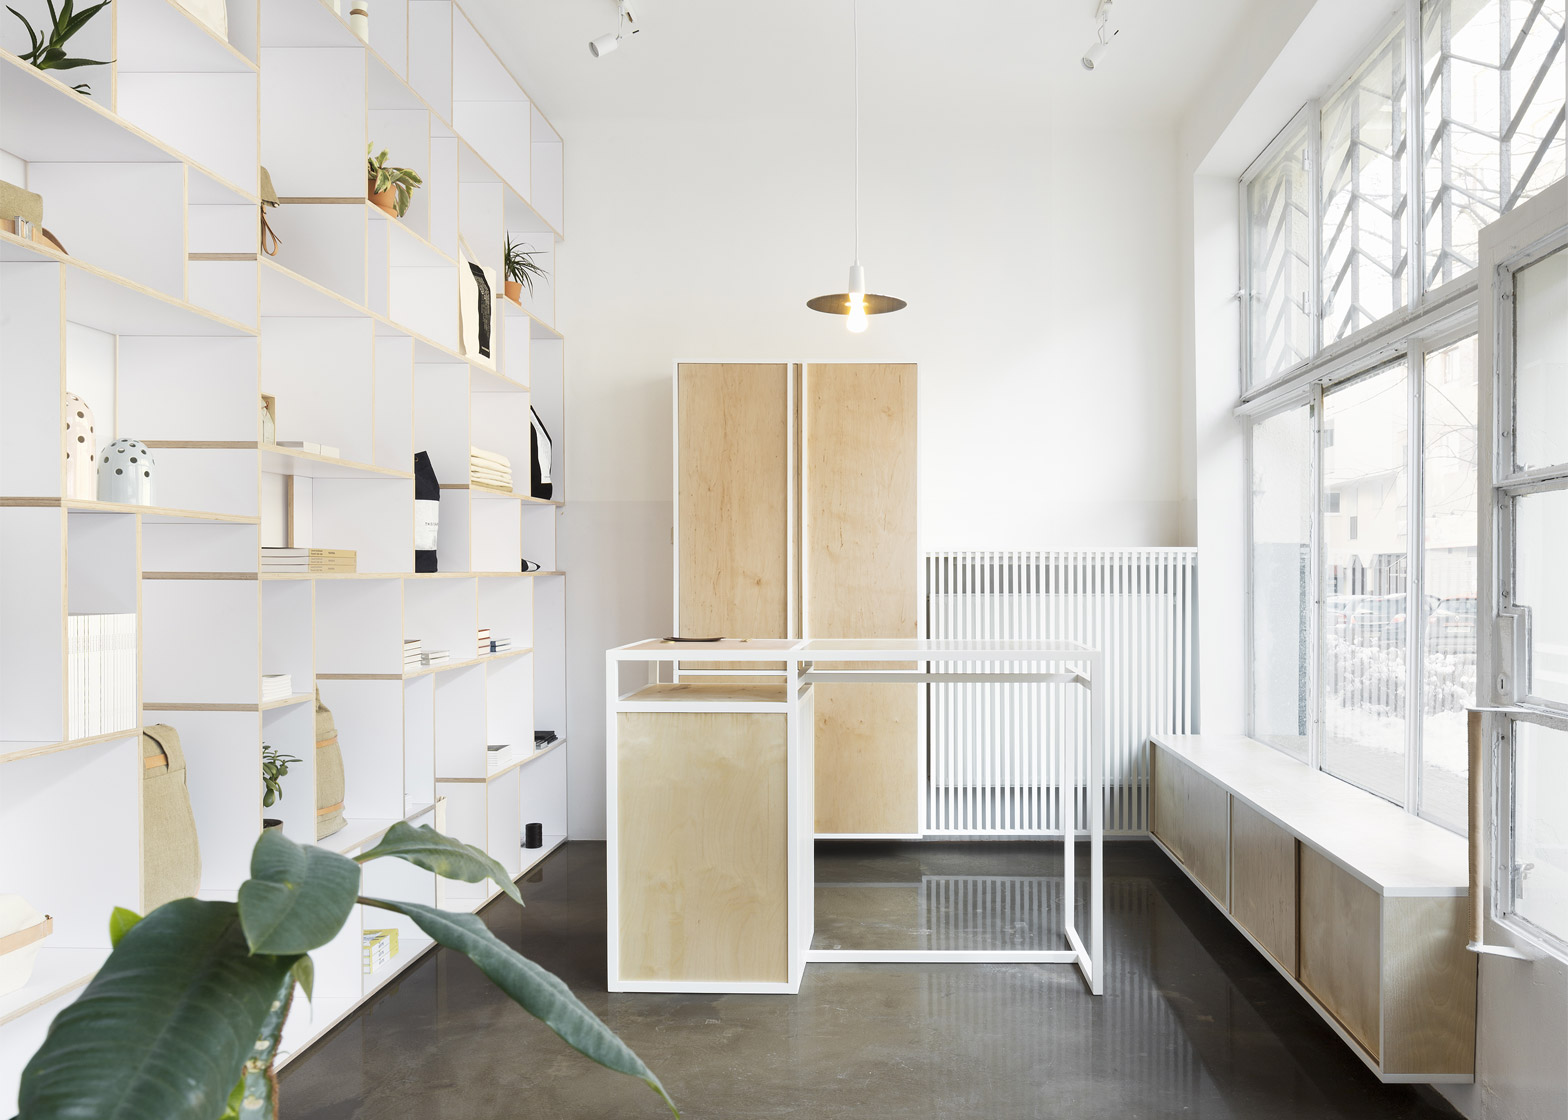 Studio Minimal thisispaper studio creates minimal interior for first design shop